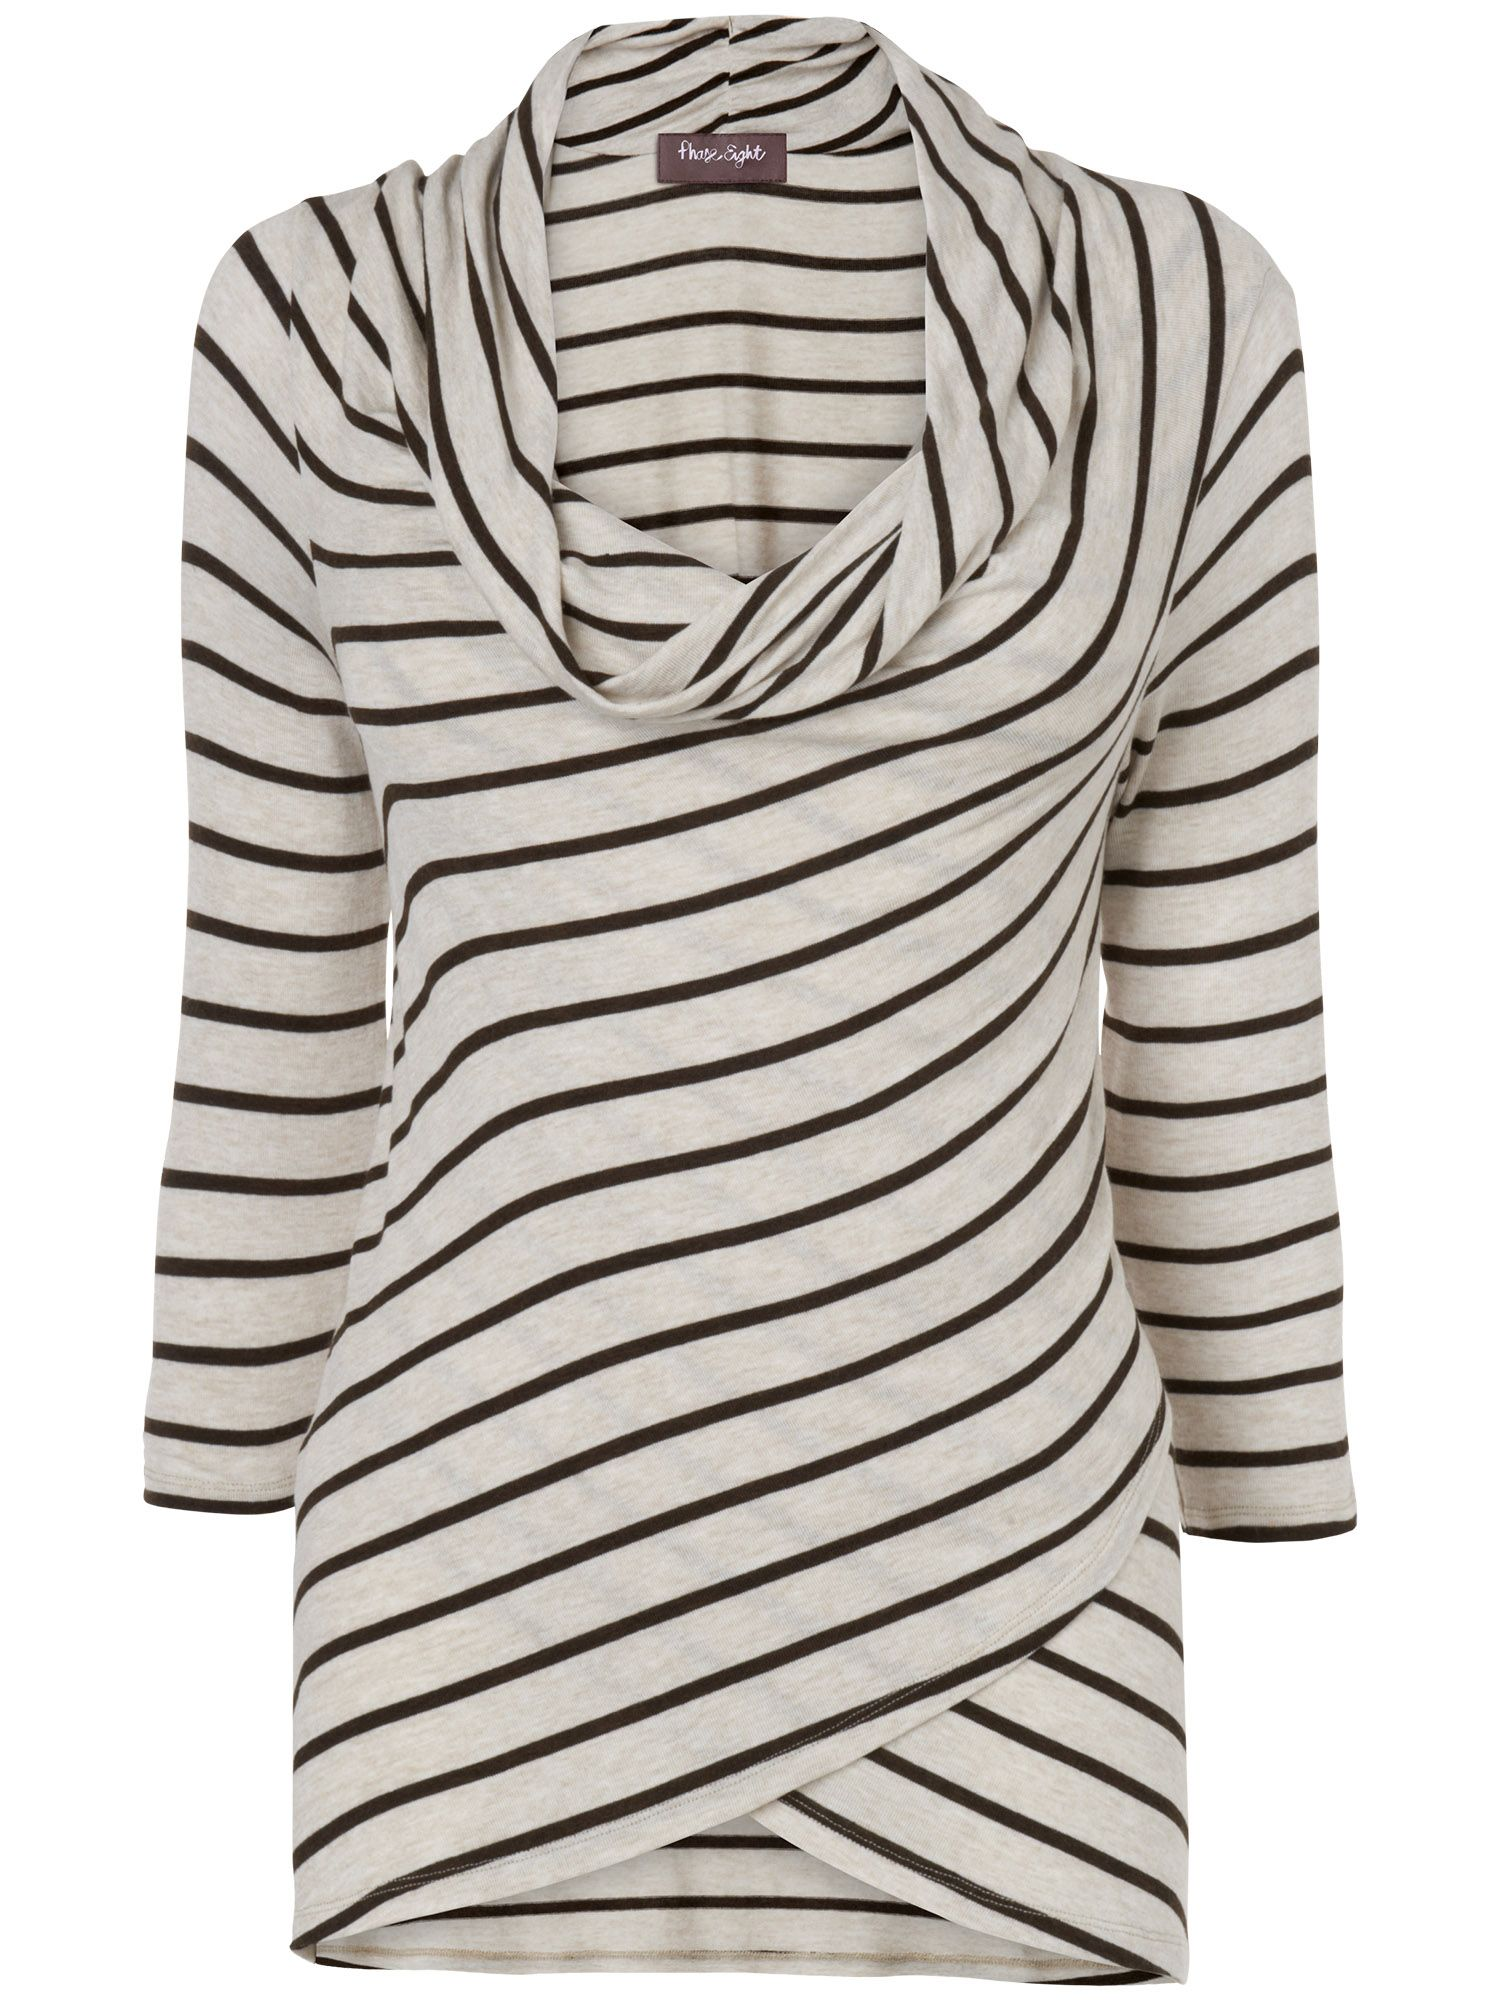 Jessie cowl stripe top